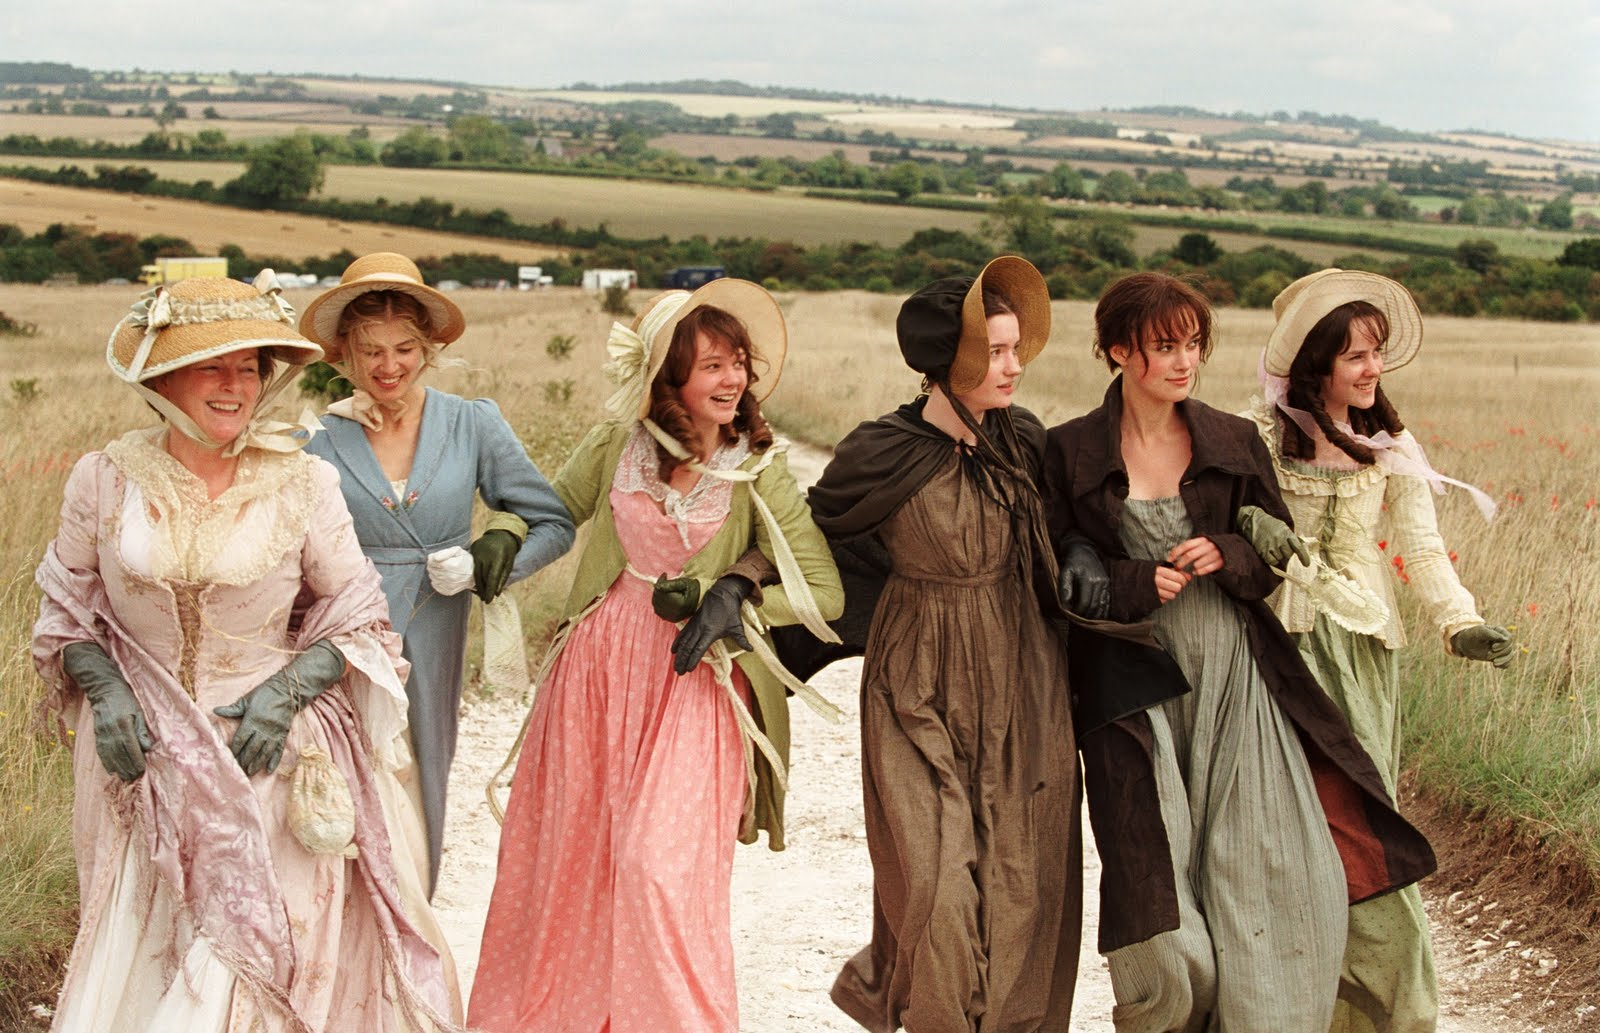 which character from pride and prejudice are you